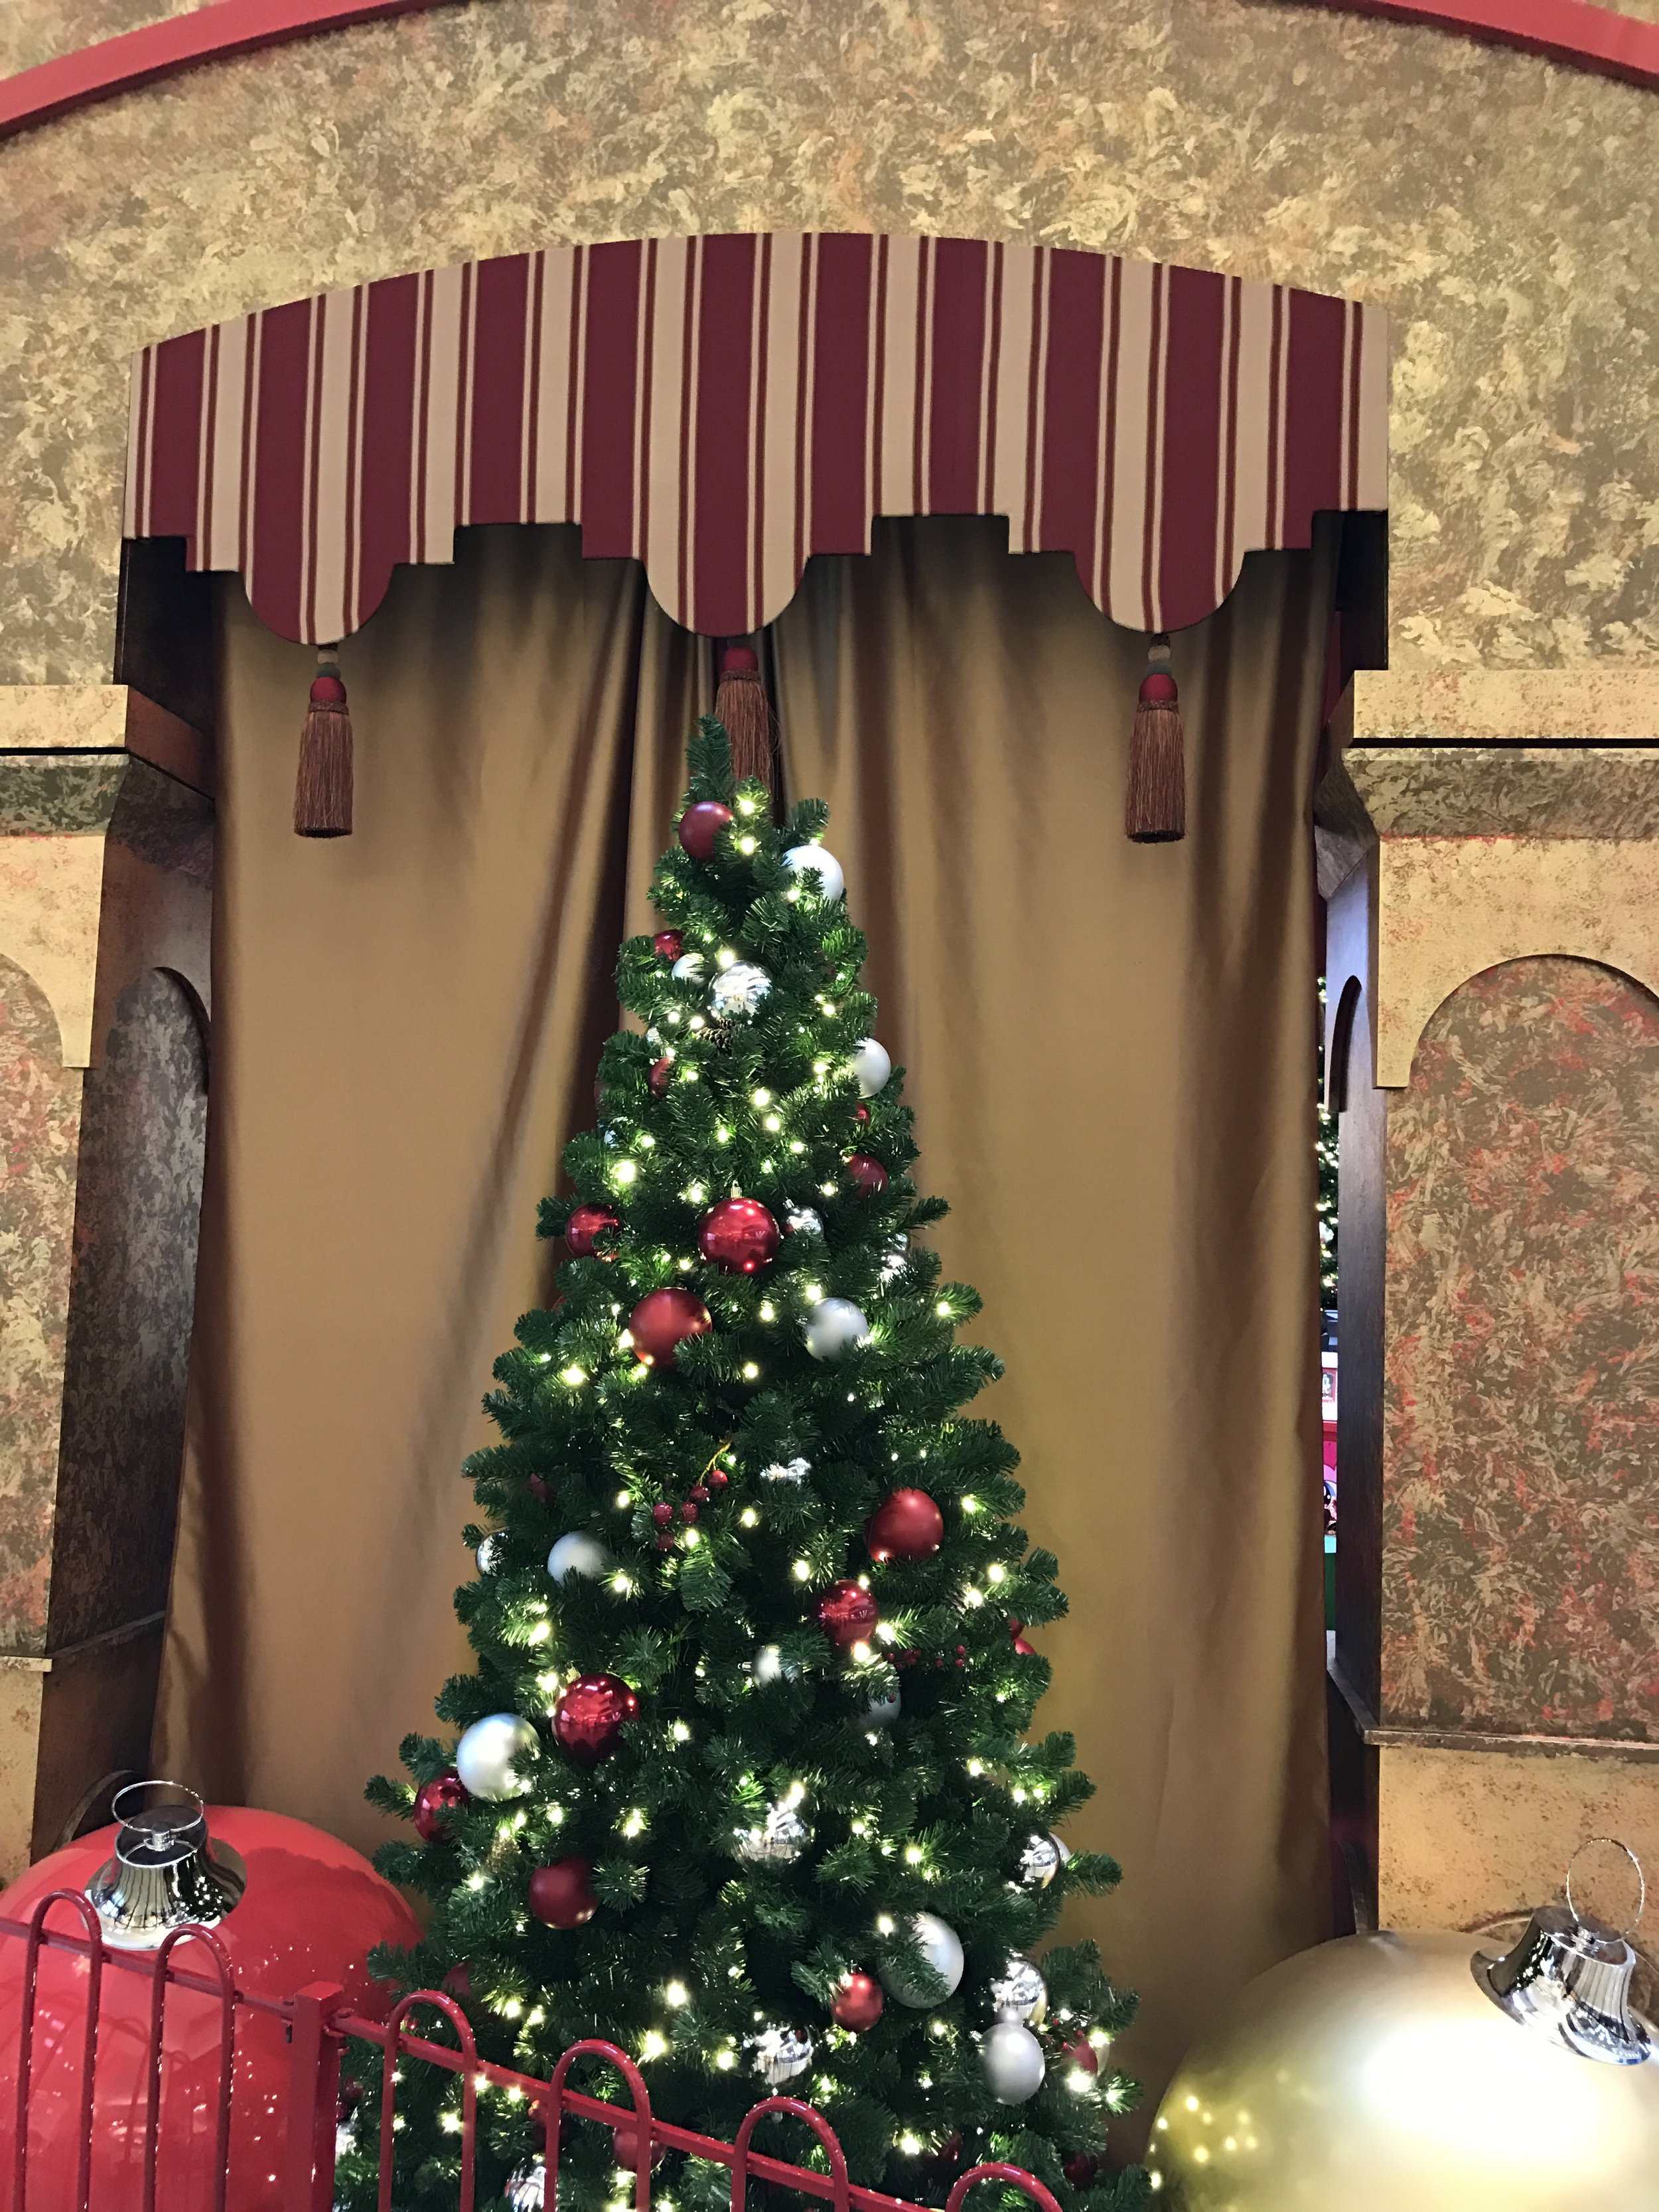 The Santa houses also had drapes and cornice boards, which I made.